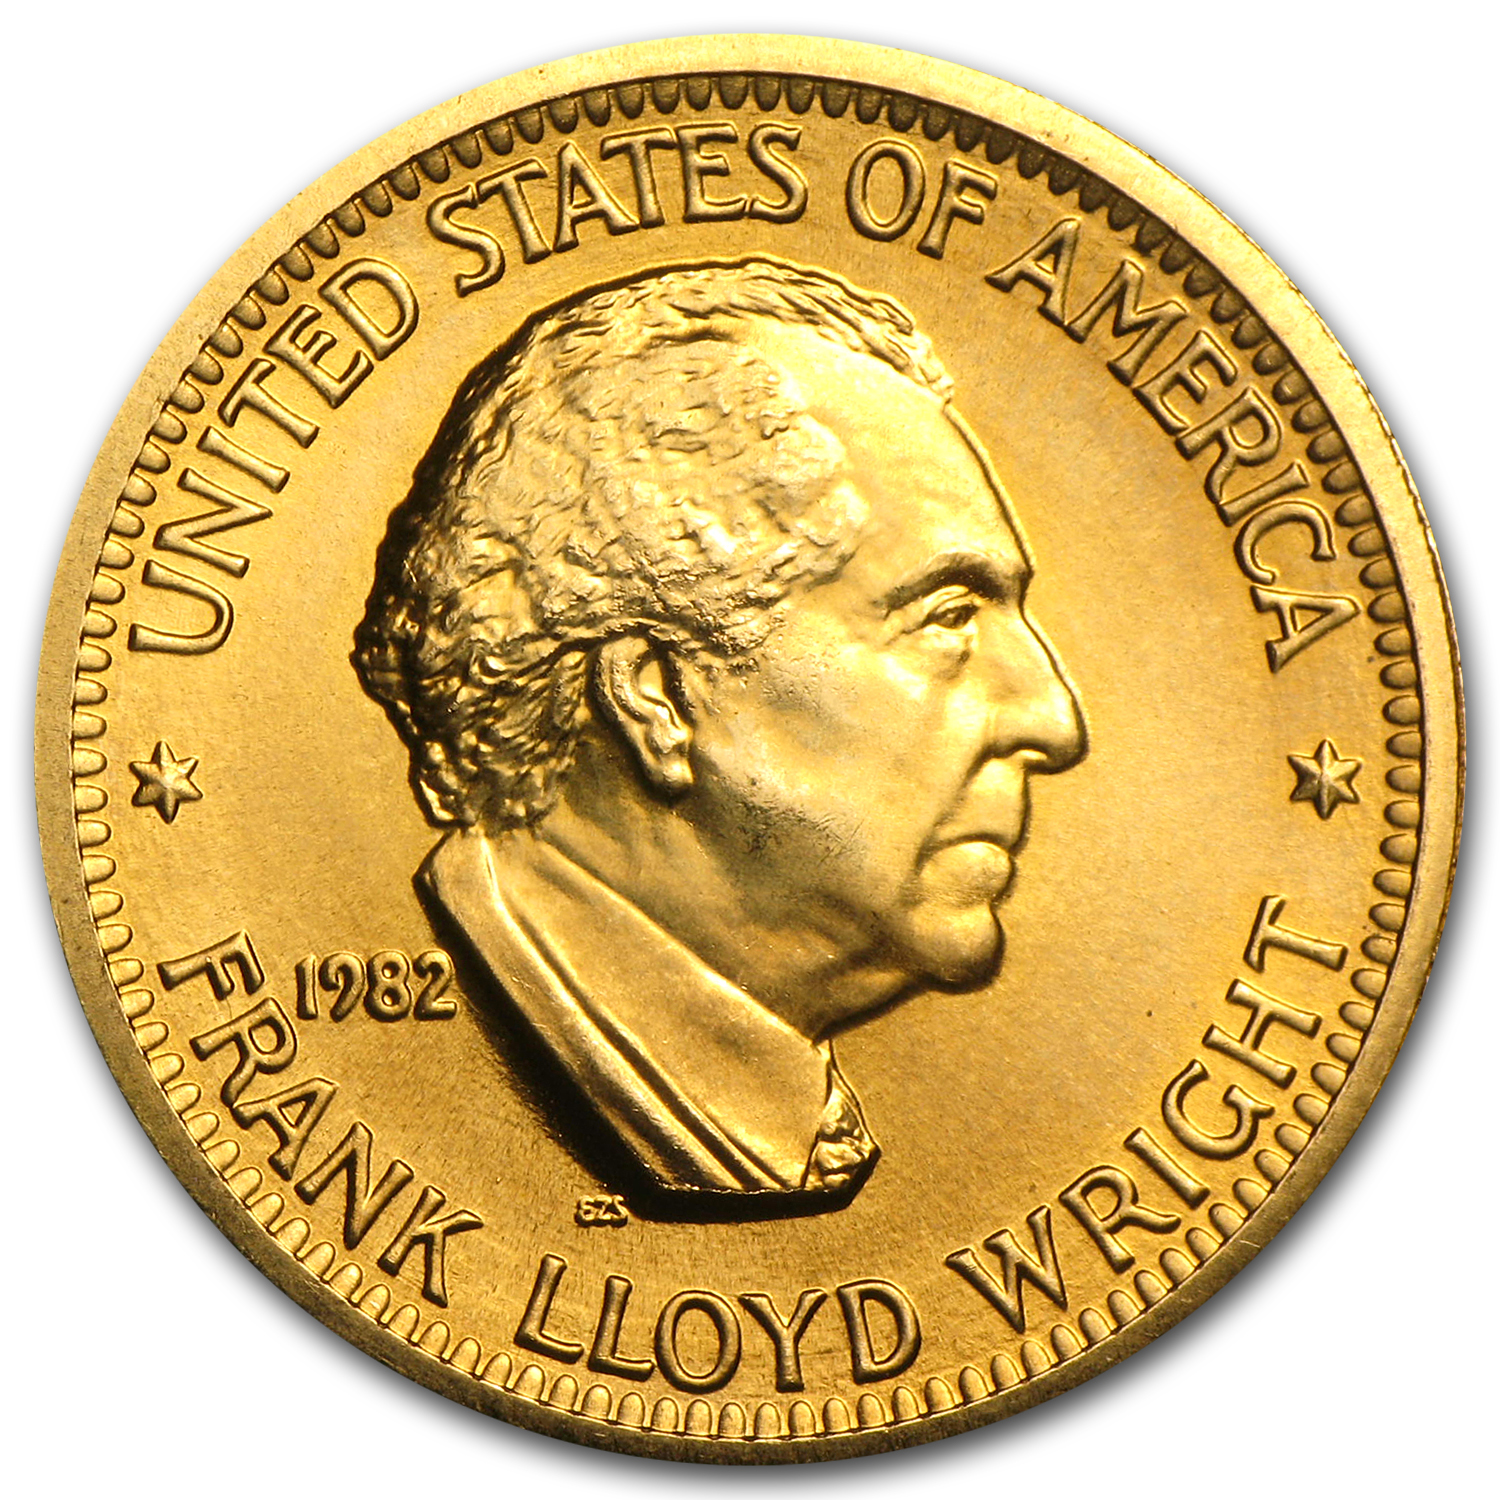 U.S. Mint 1/2 oz Gold Commemorative Arts Medal Frank Lloyd Wright